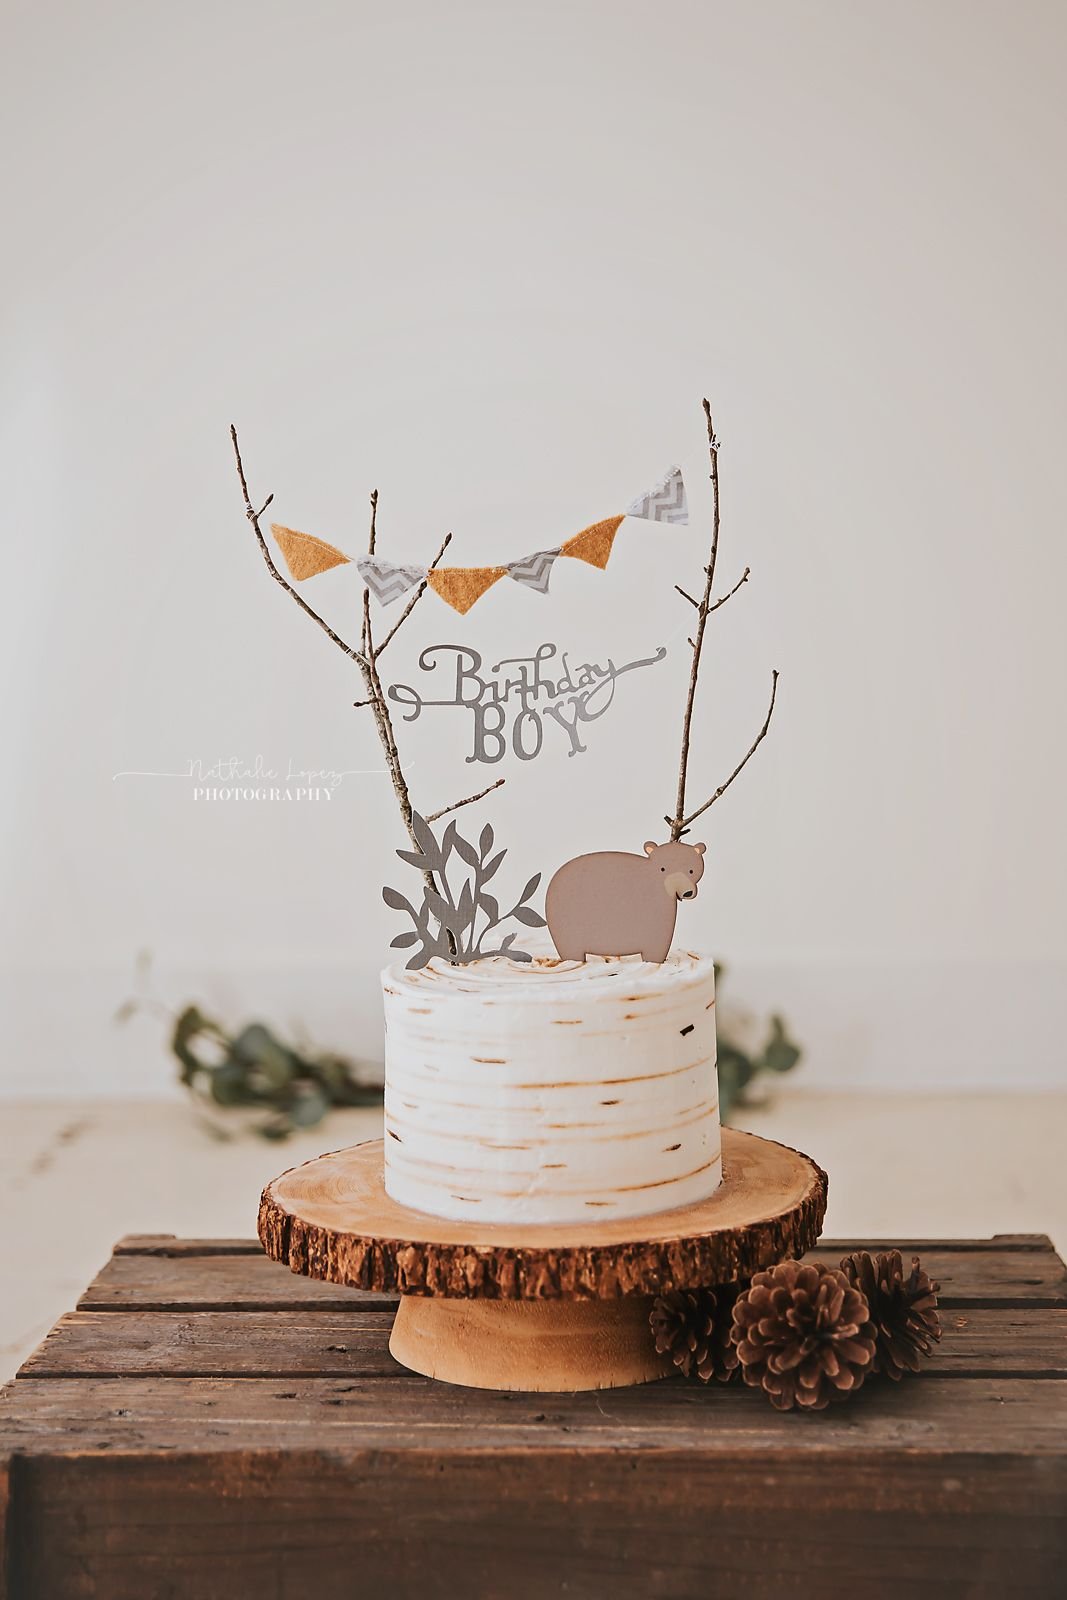 Woodland cake smash theme. Birthday boy! Cake smash